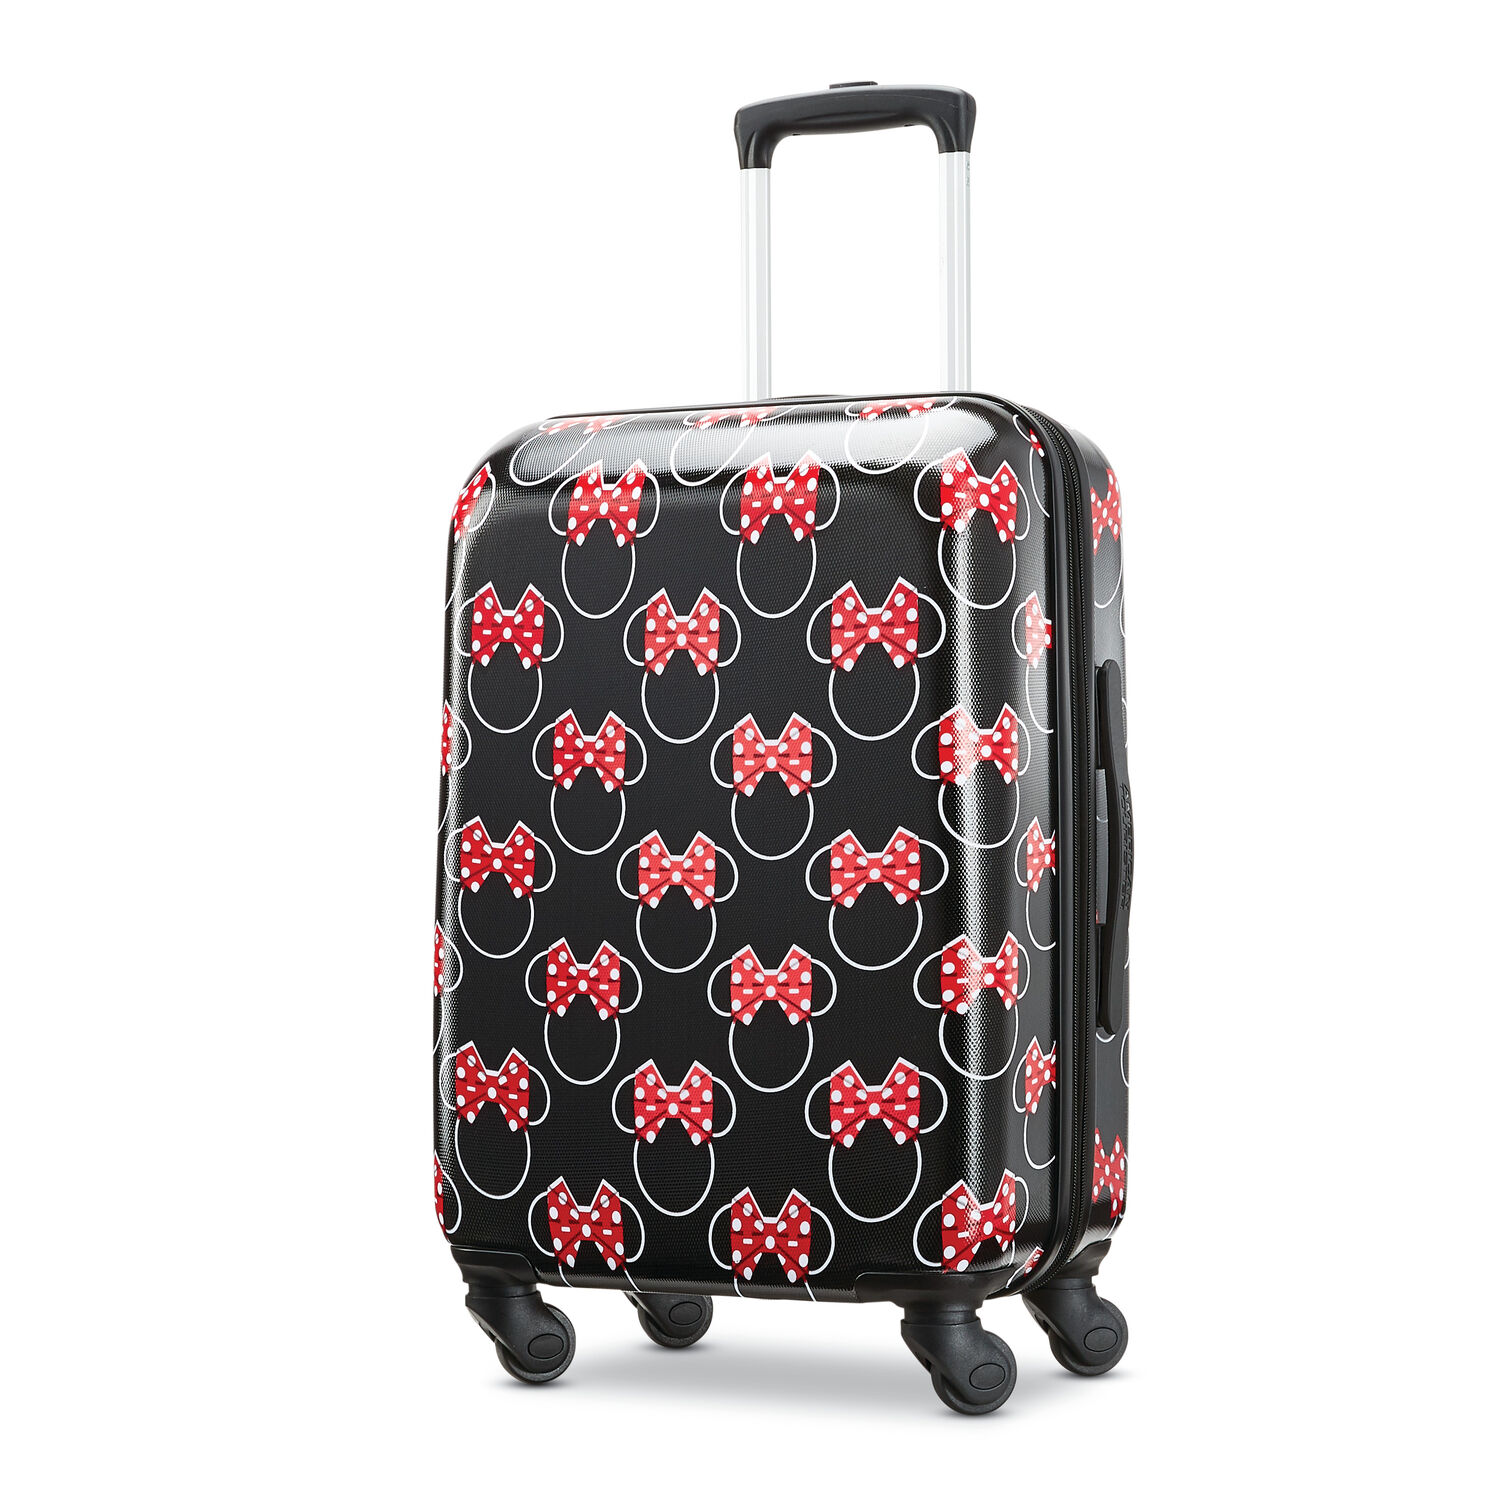 """American Tourister Disney Minnie Bows 20"""" Spinner in the color Minnie Mouse Red Bows."""